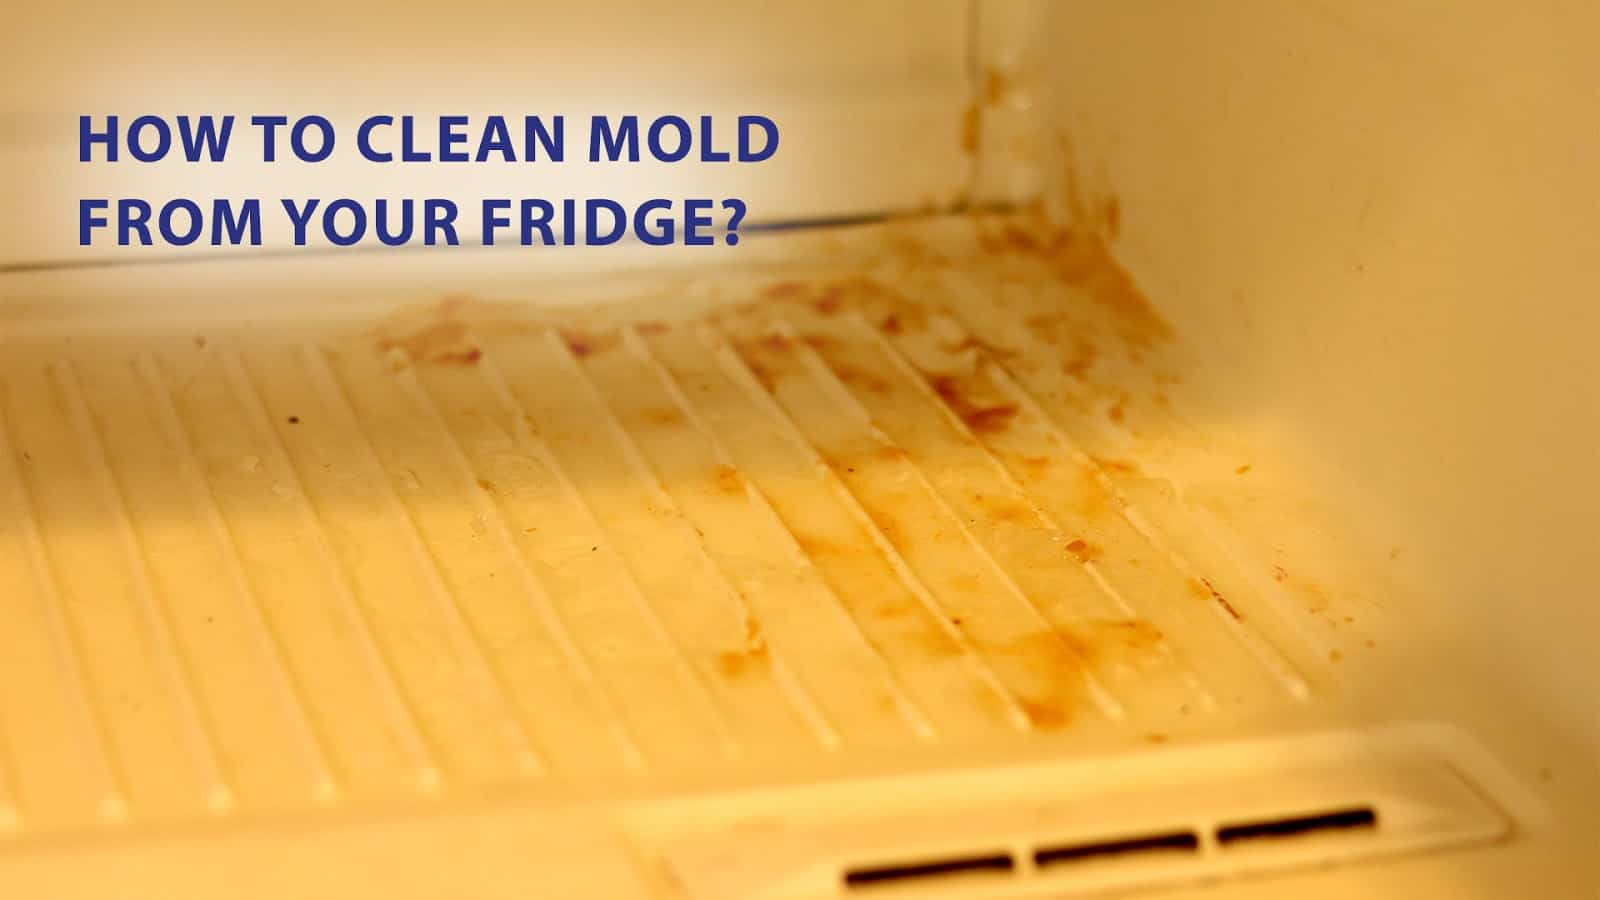 clean mold from fridge